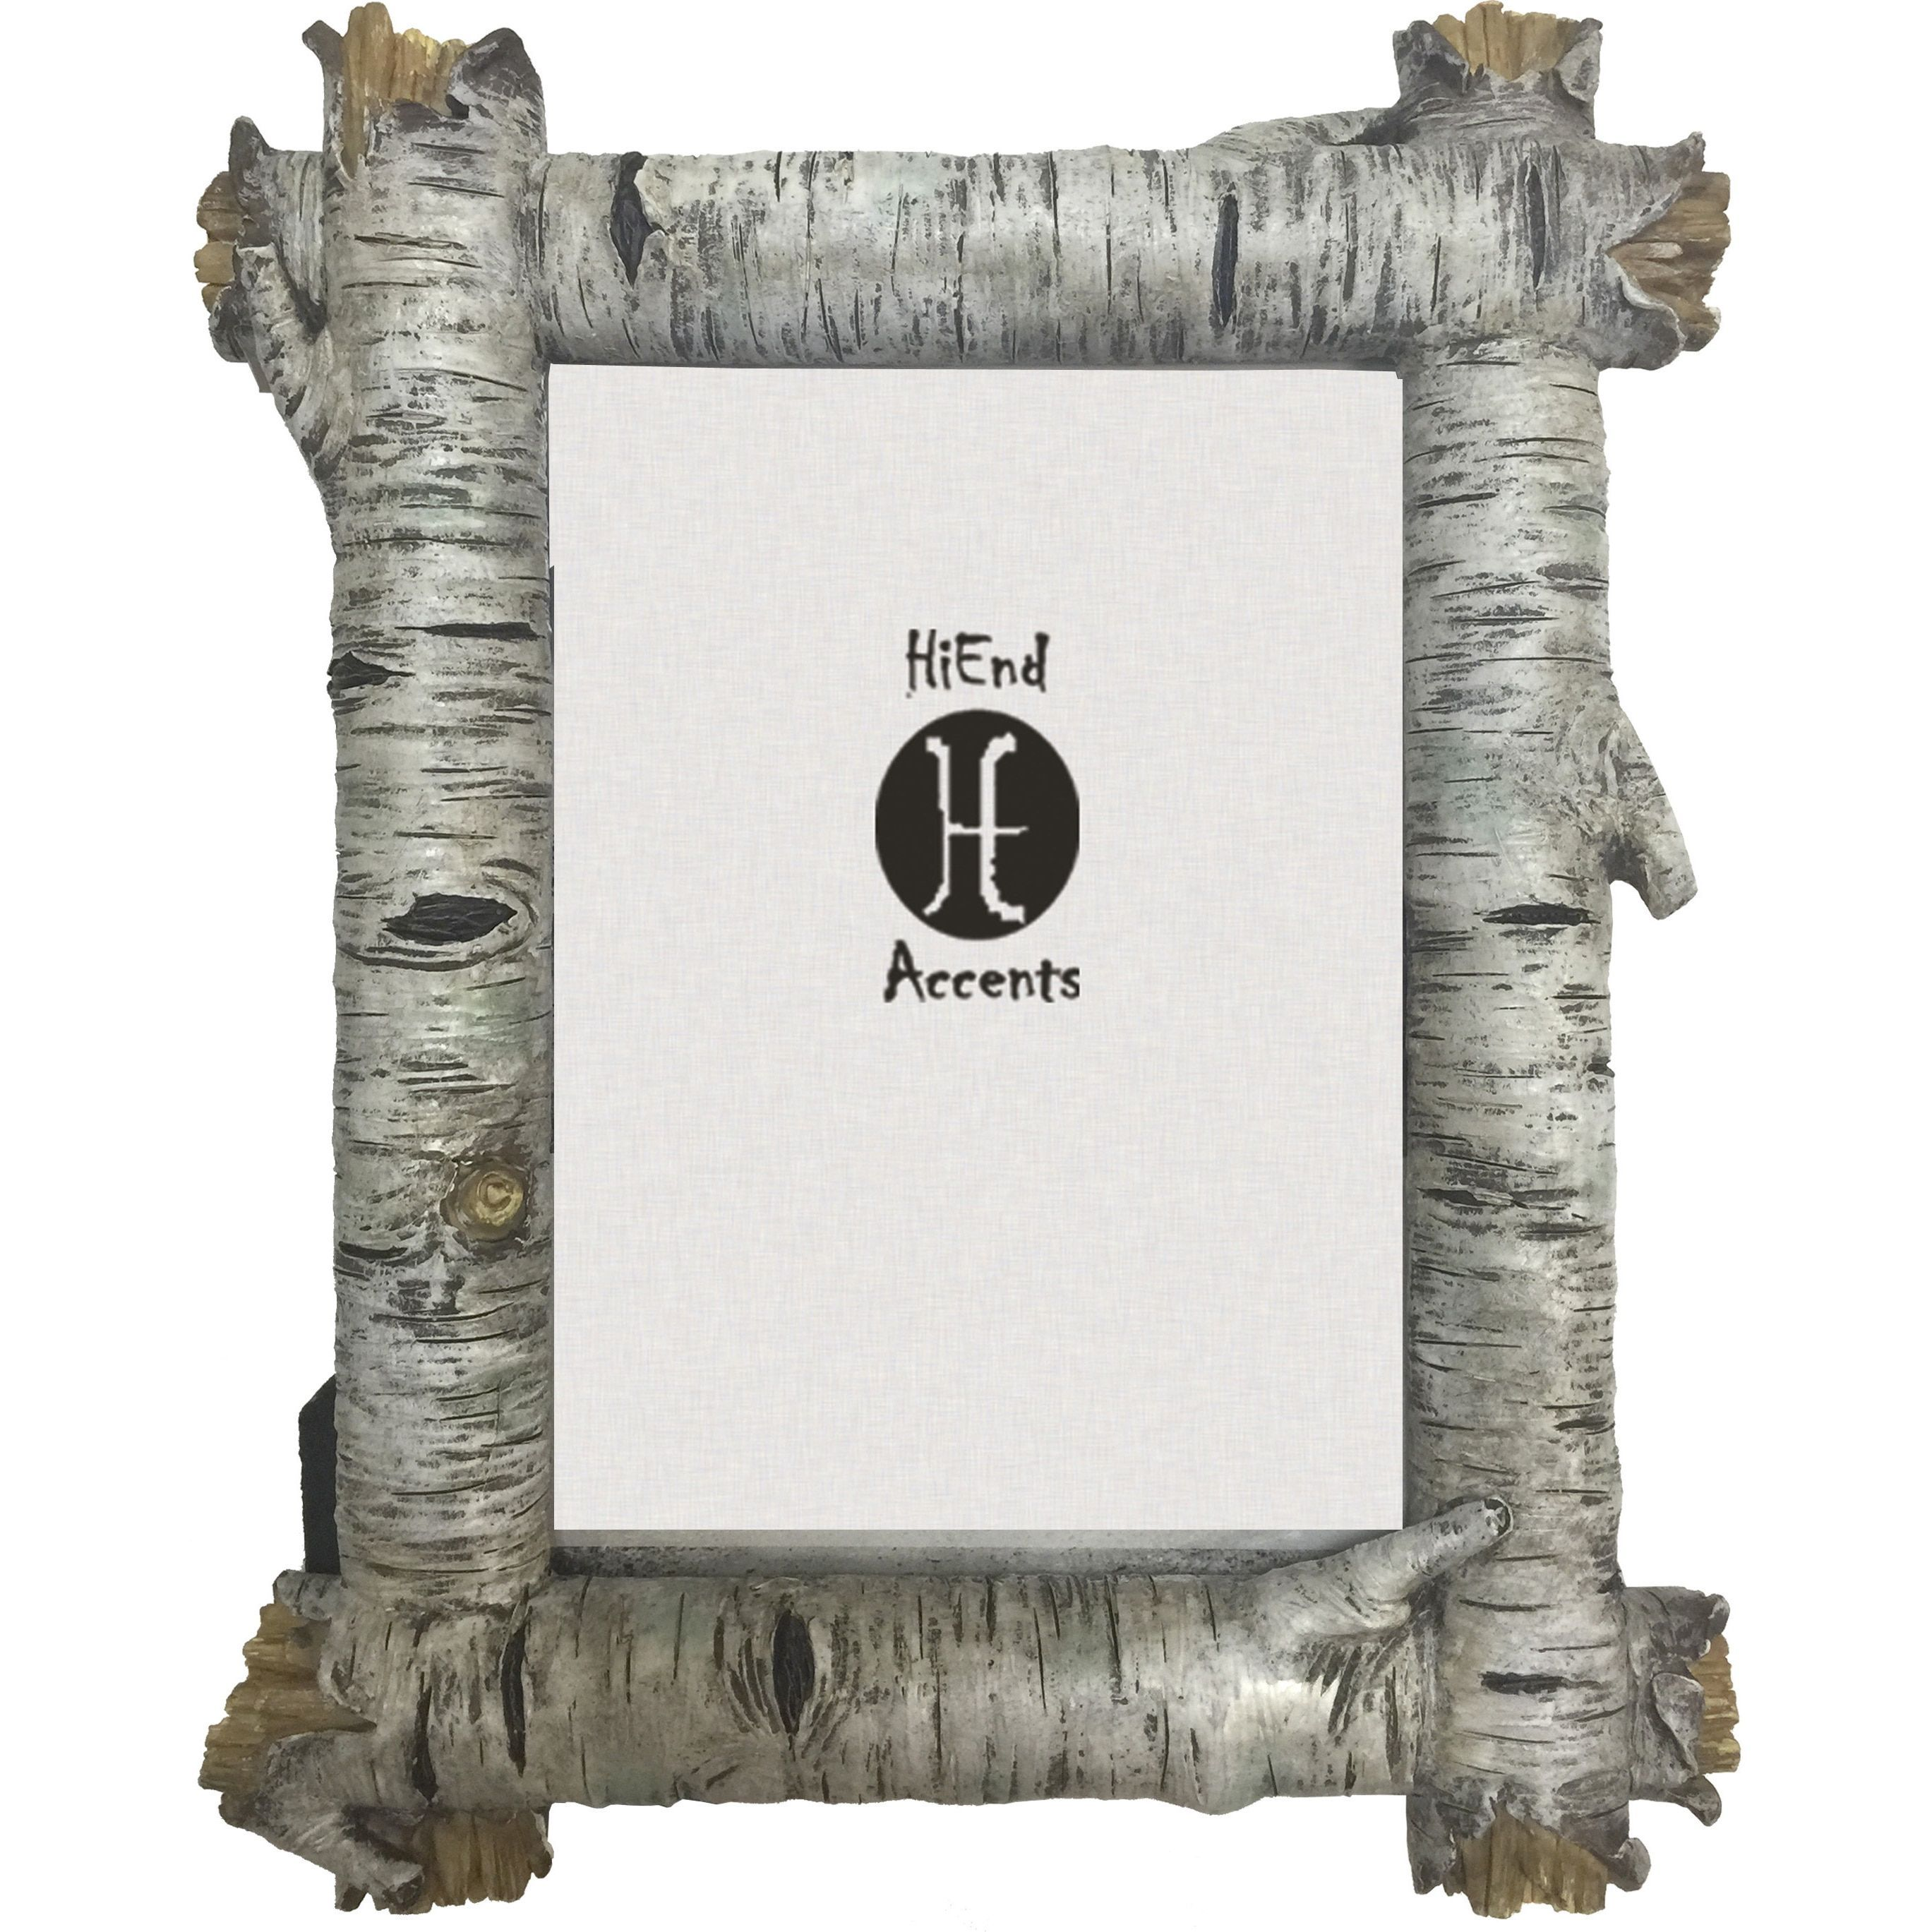 HiEnd Accents Birch Log Frame (Multi - 5x7) (Plastic) | Products ...